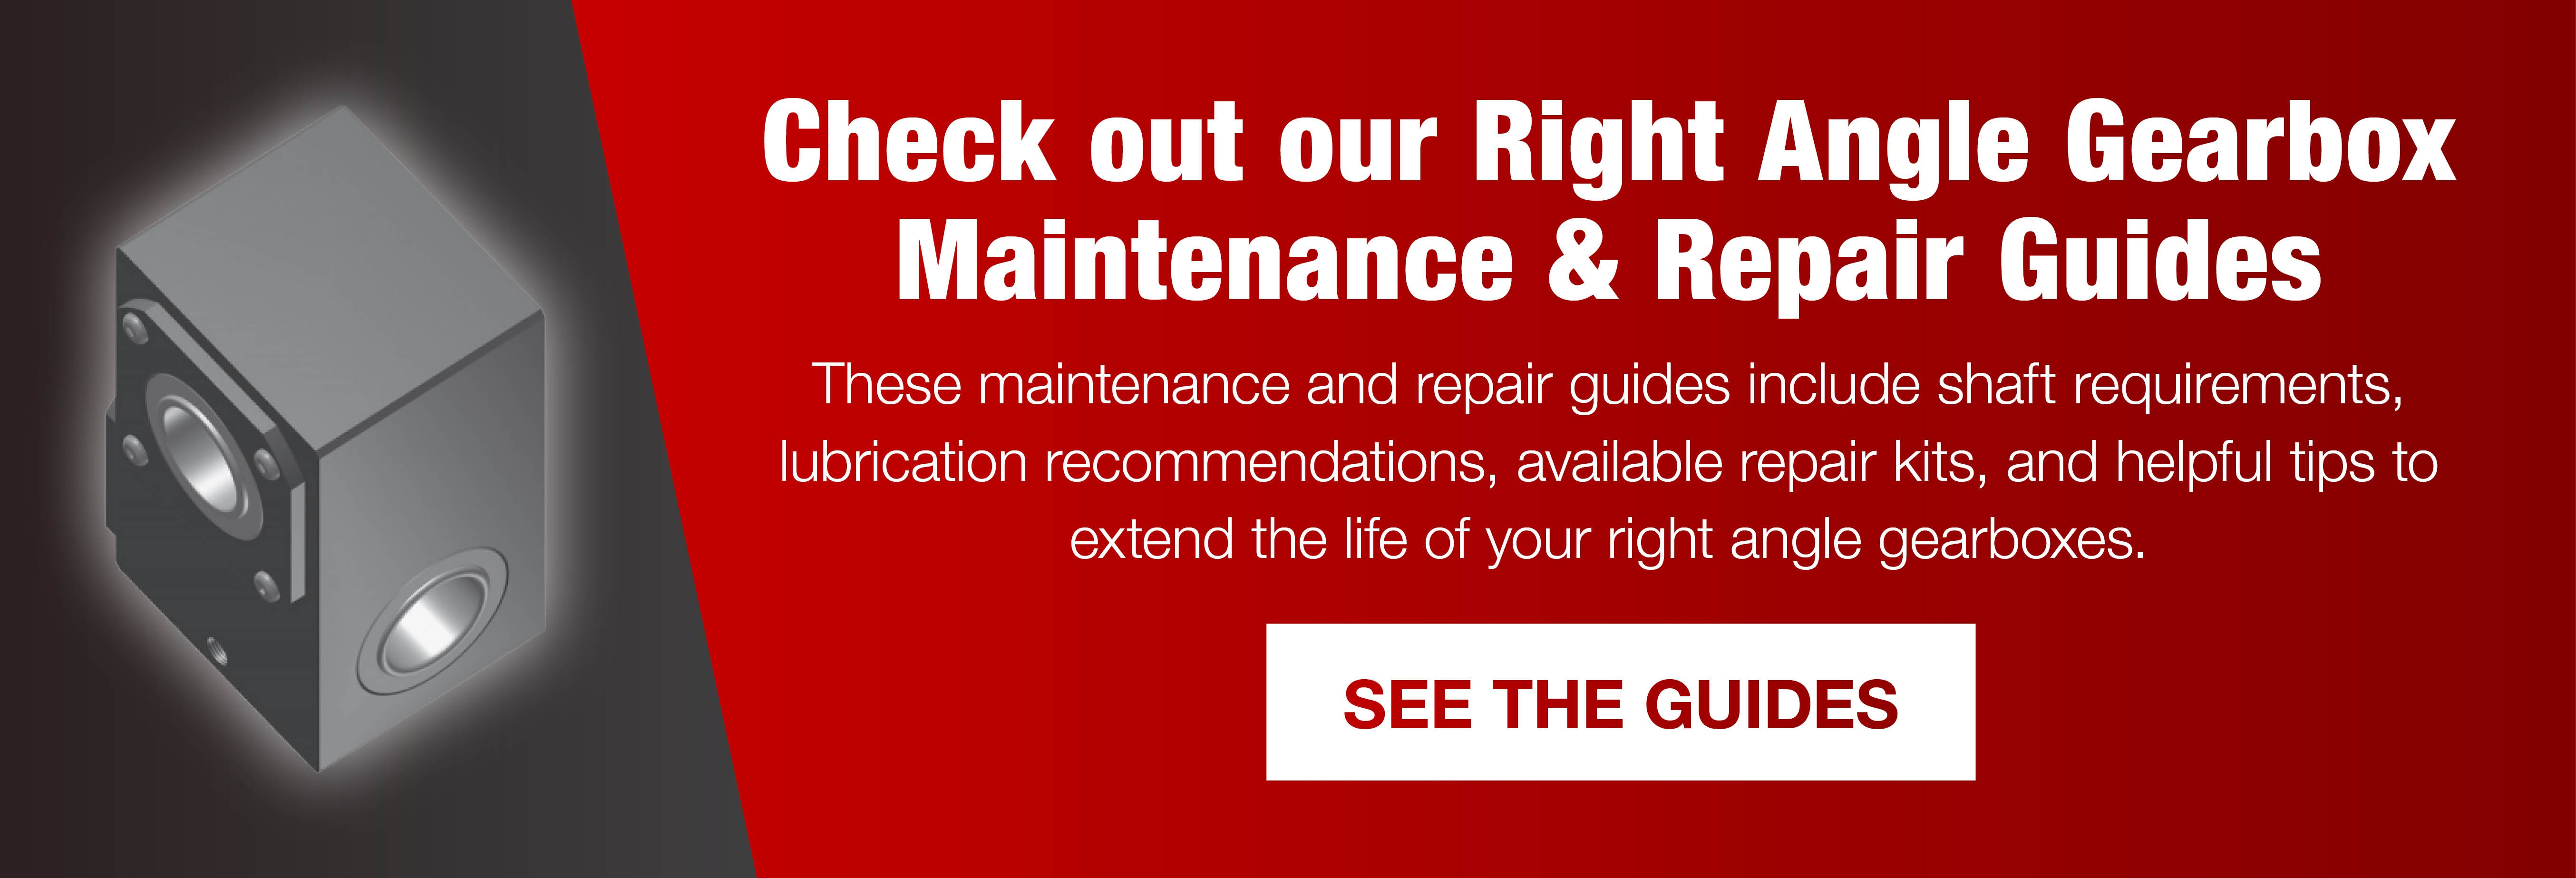 Right Angle Gearbox Maintenance & Repair Guides